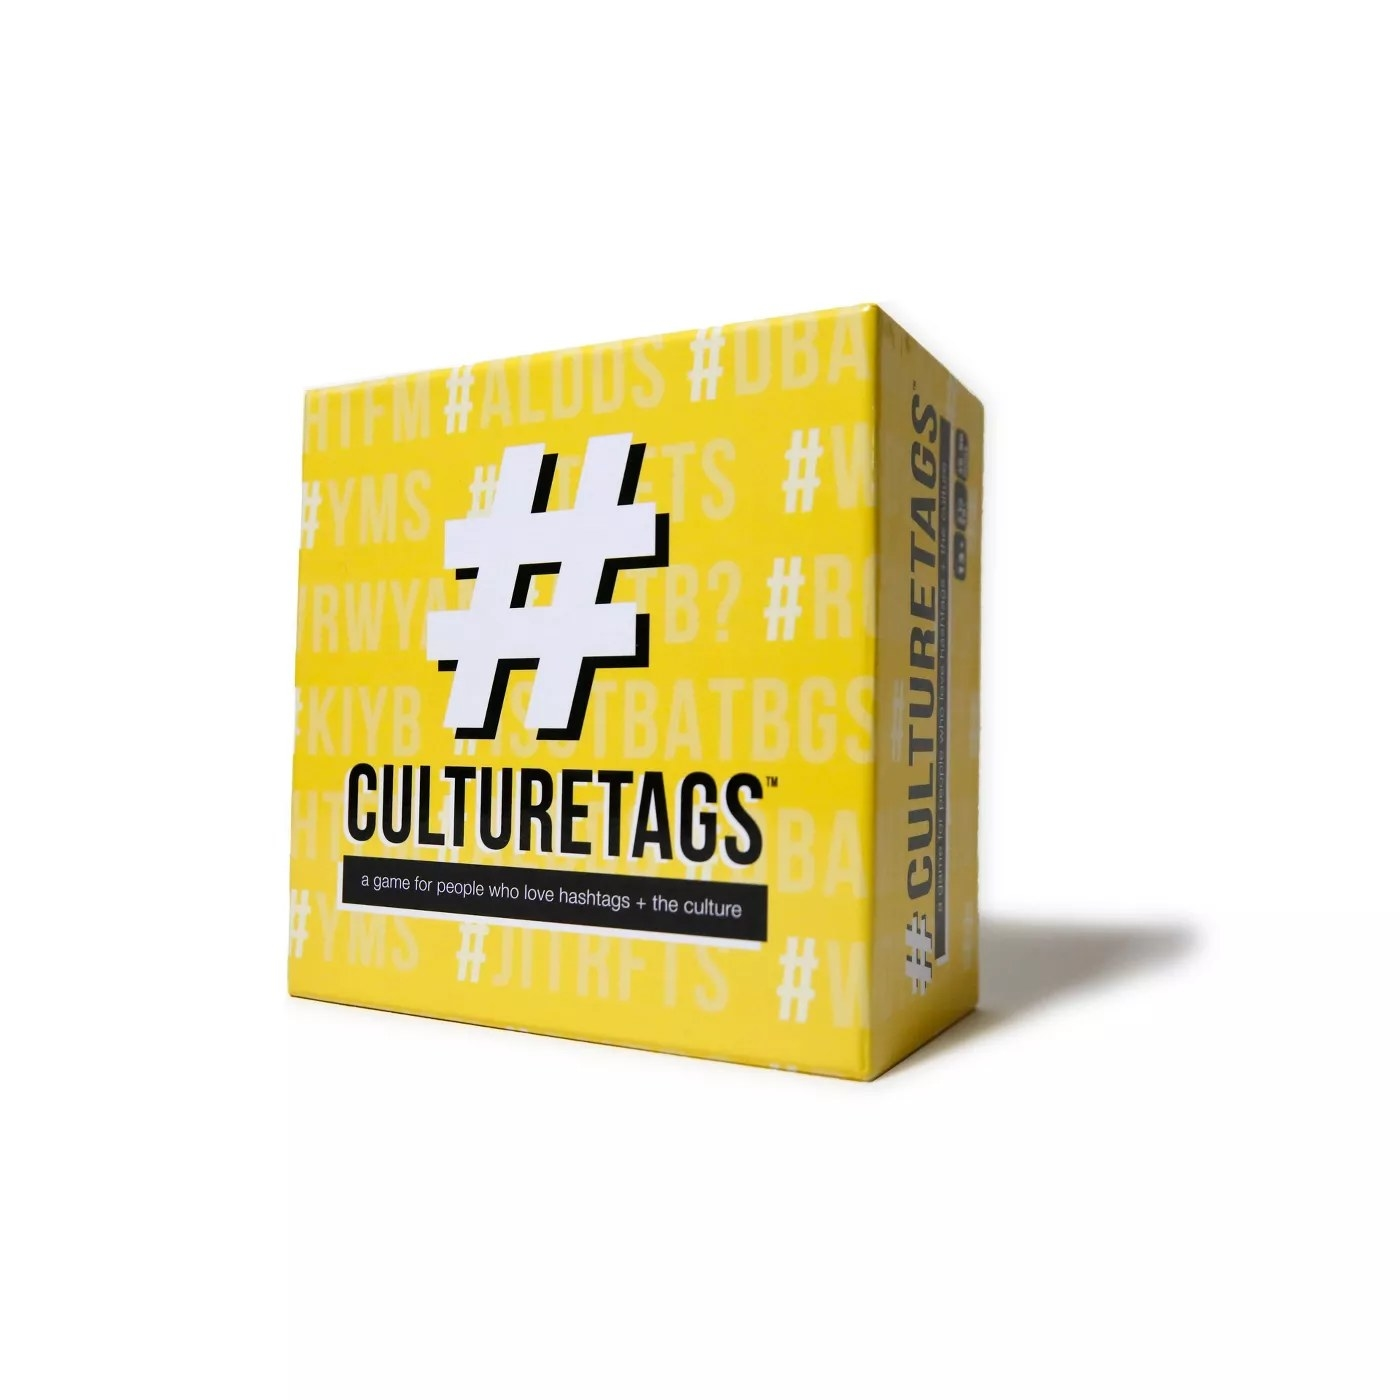 """The yellow game box is covered in hashtag symbols and says """"CULTURETAGS"""" and below """"a game for people who love hashtags + the culture"""""""